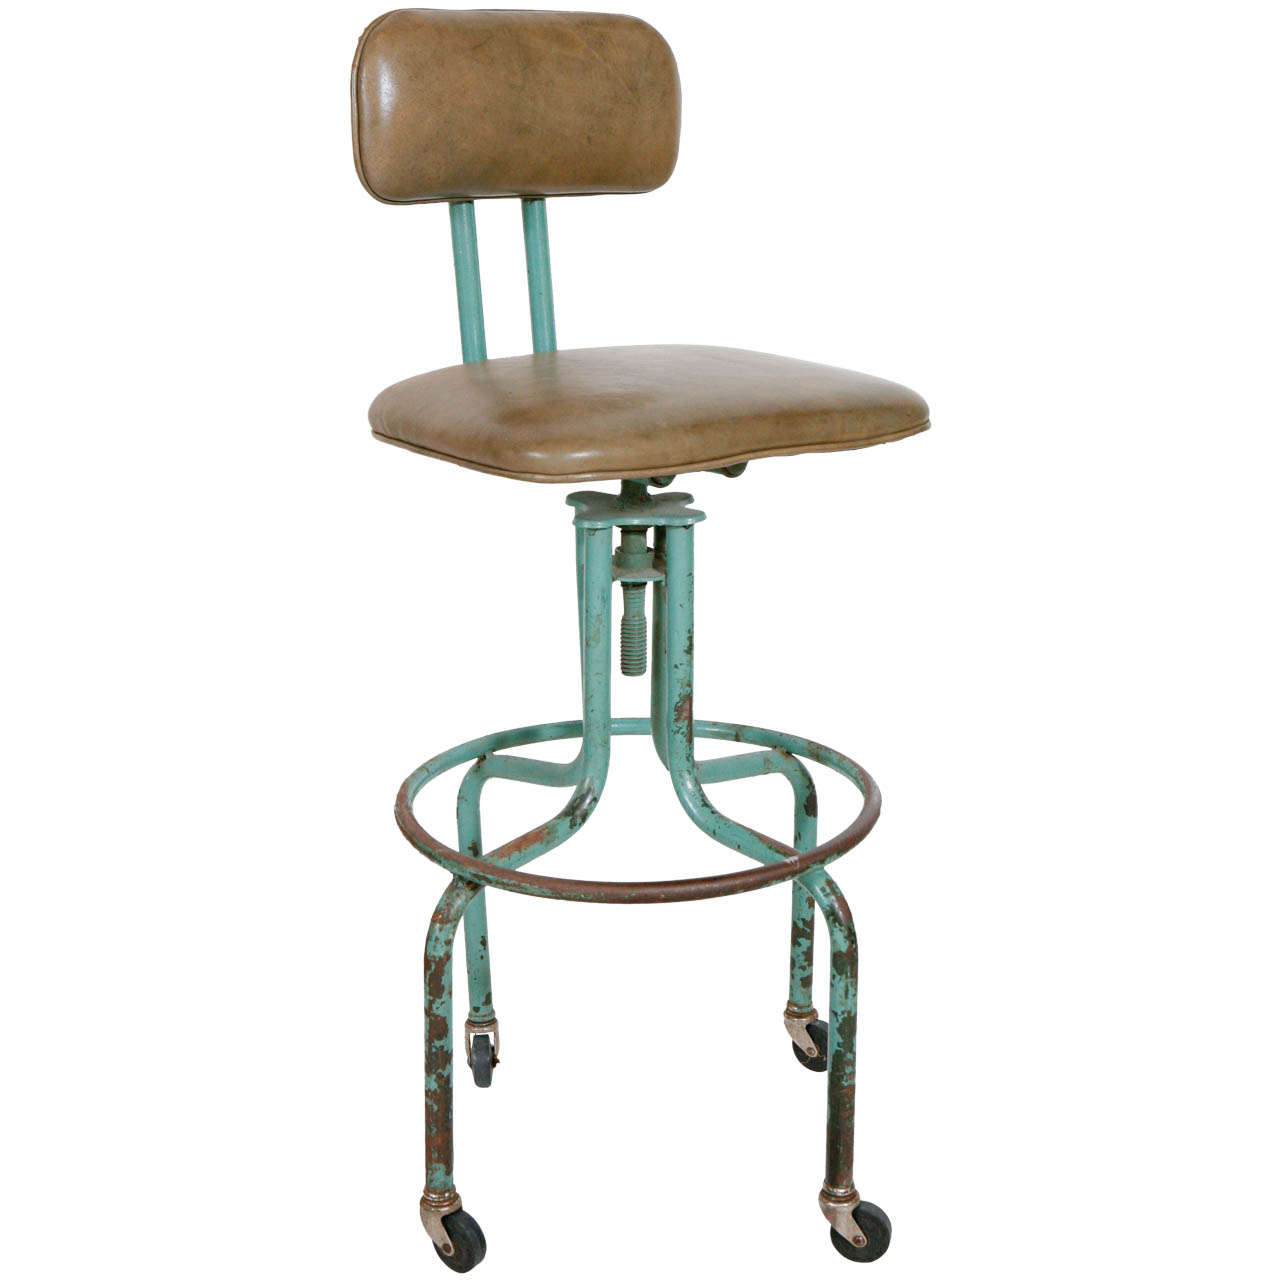 Vintage Green Work Stool With Nailhead Leather Seat And Wheels 1